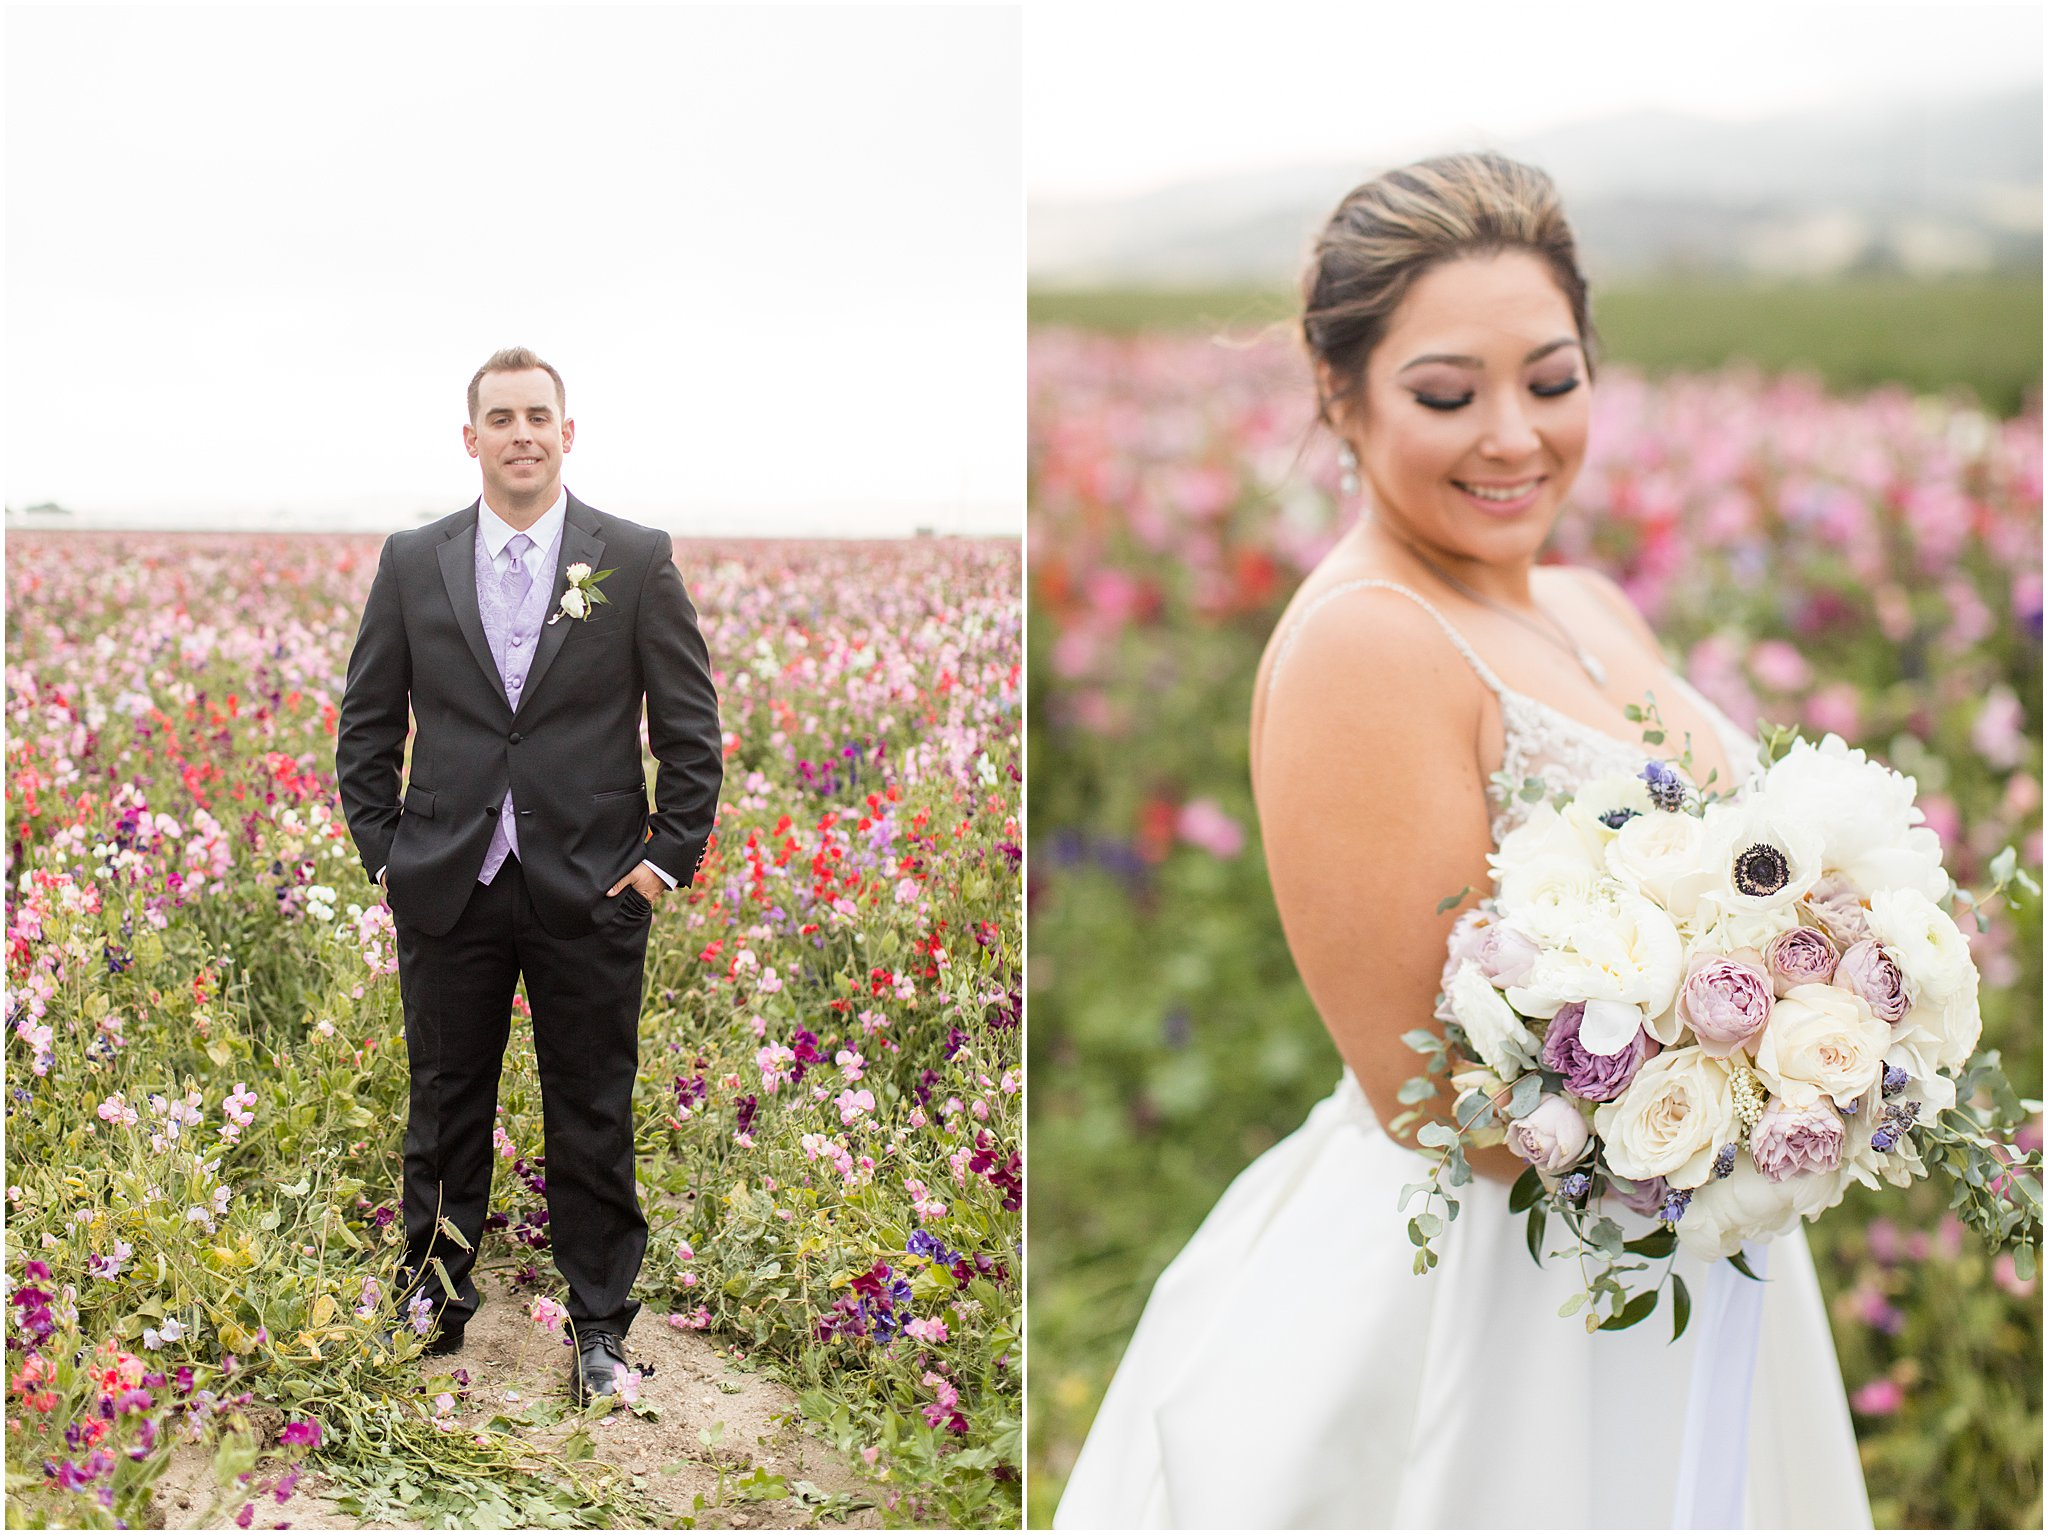 2019 wedding san juan bautista hacienda de leal vineyards bay area wedding photographer_0083.jpg